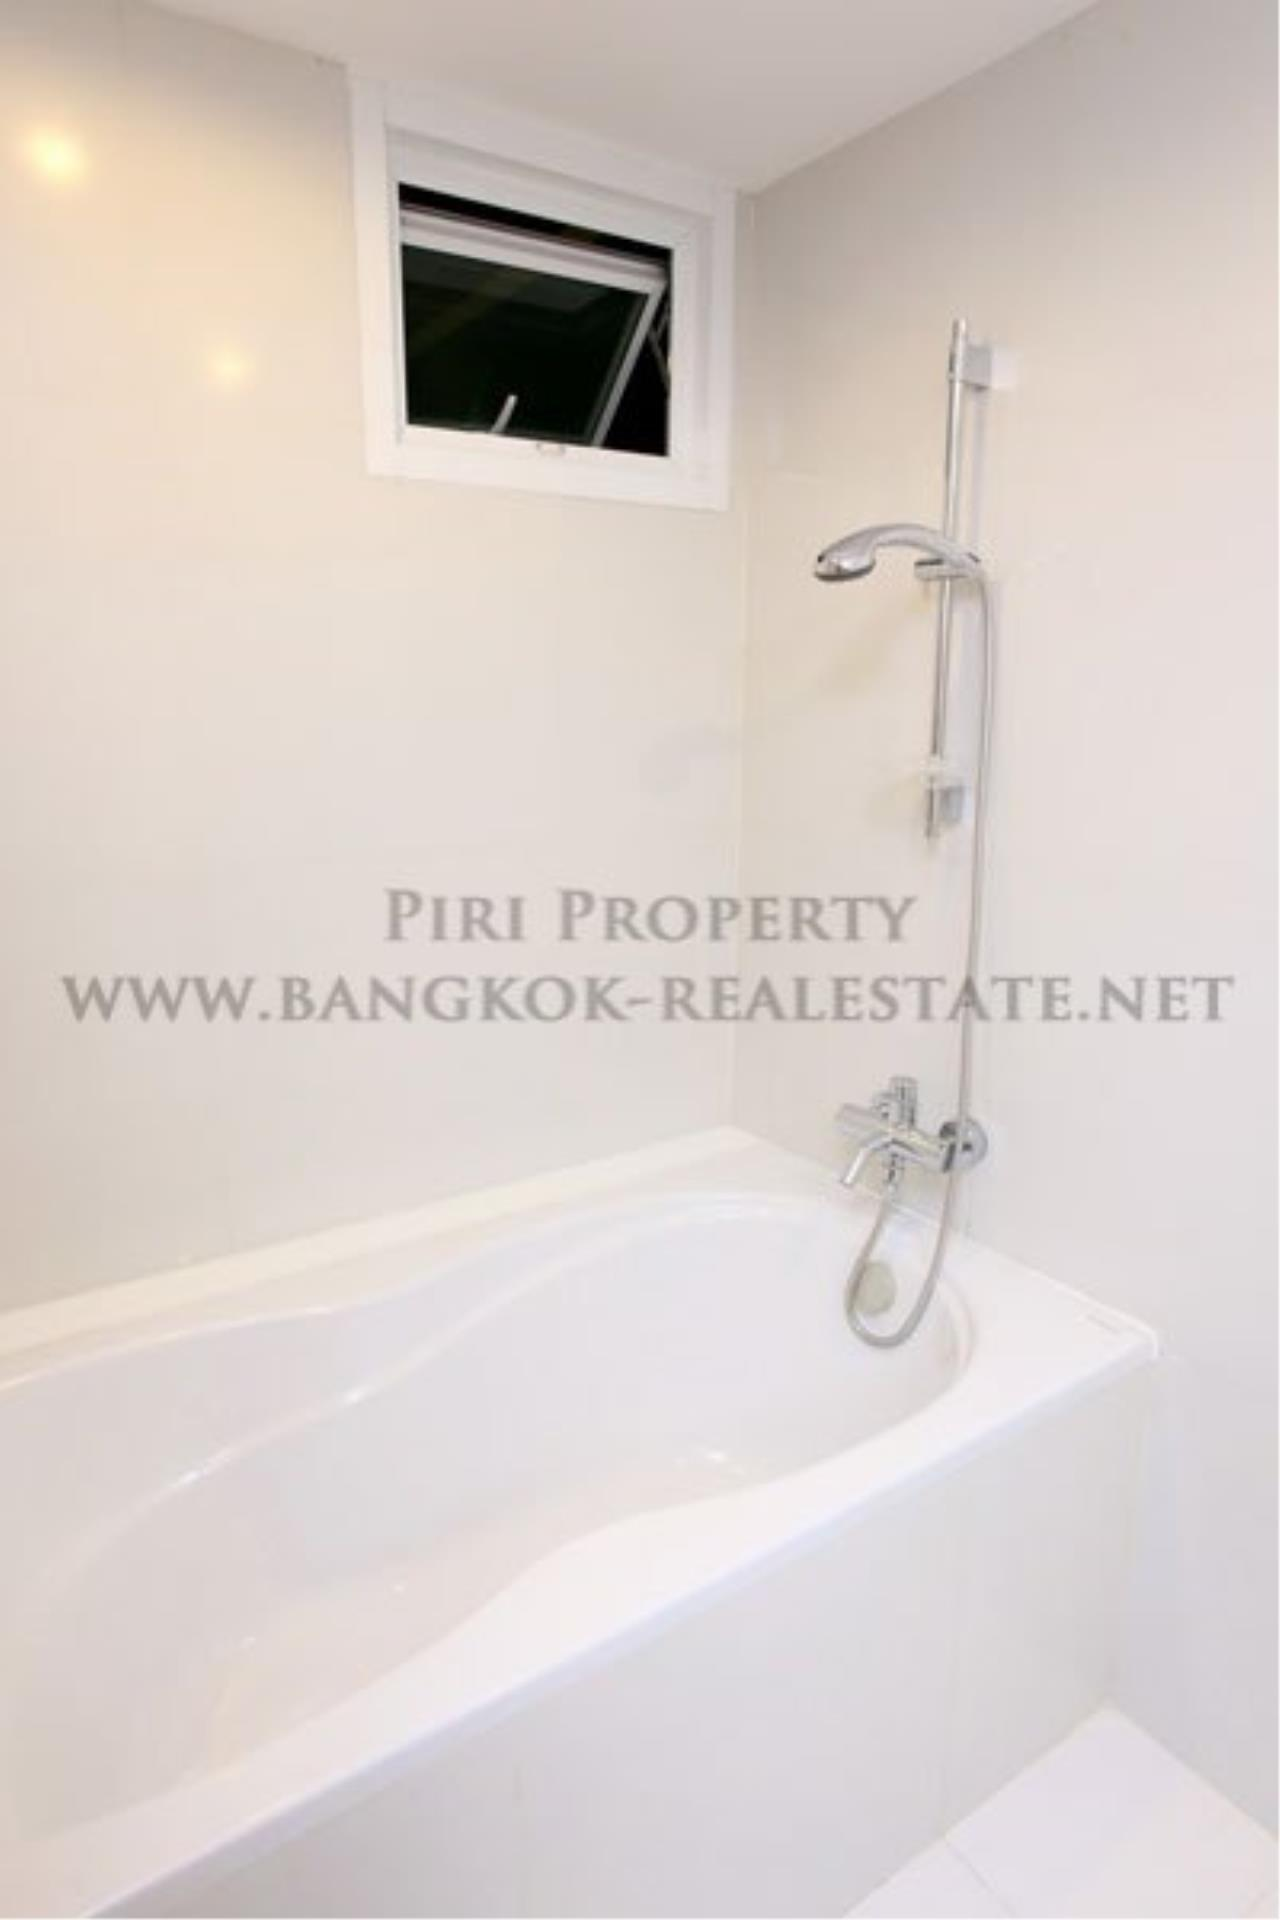 Piri Property Agency's 2 Bedrooms for Rent next to Lumpini Park - Modern Apartment with free shuttle to Ratchadamri 6